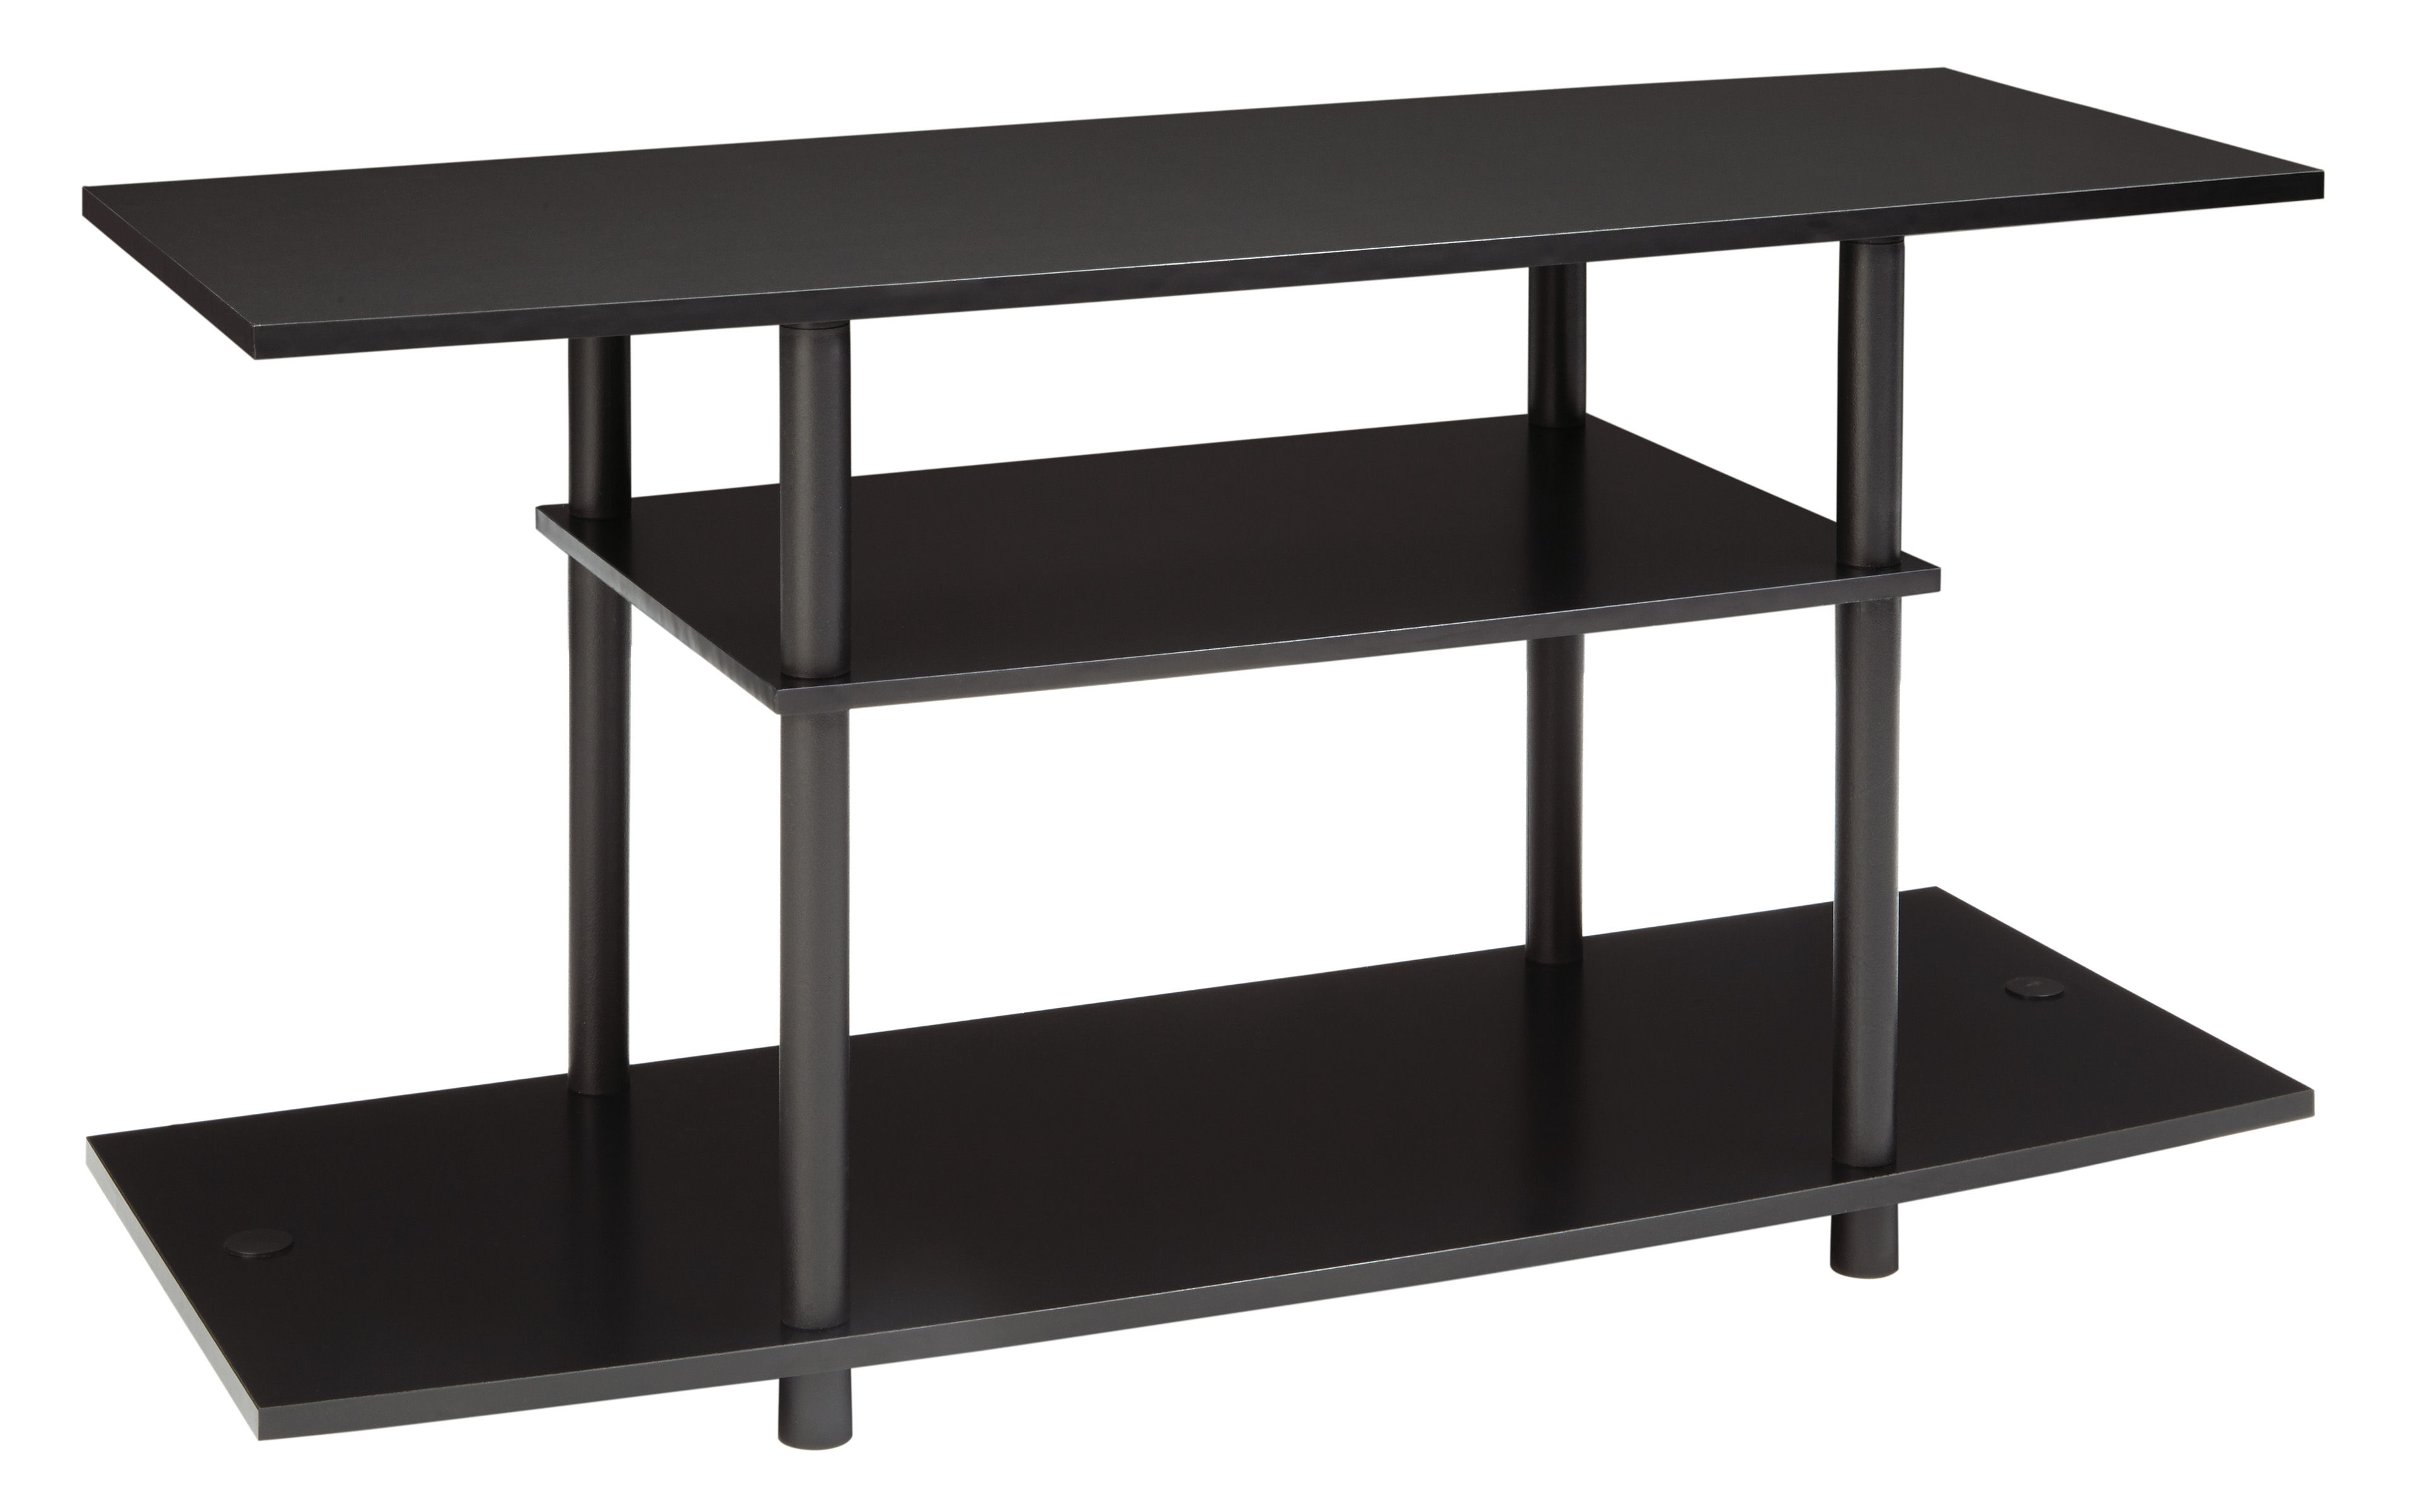 Ashley Furniture Cooperson Black Tv Stand The Classy Home